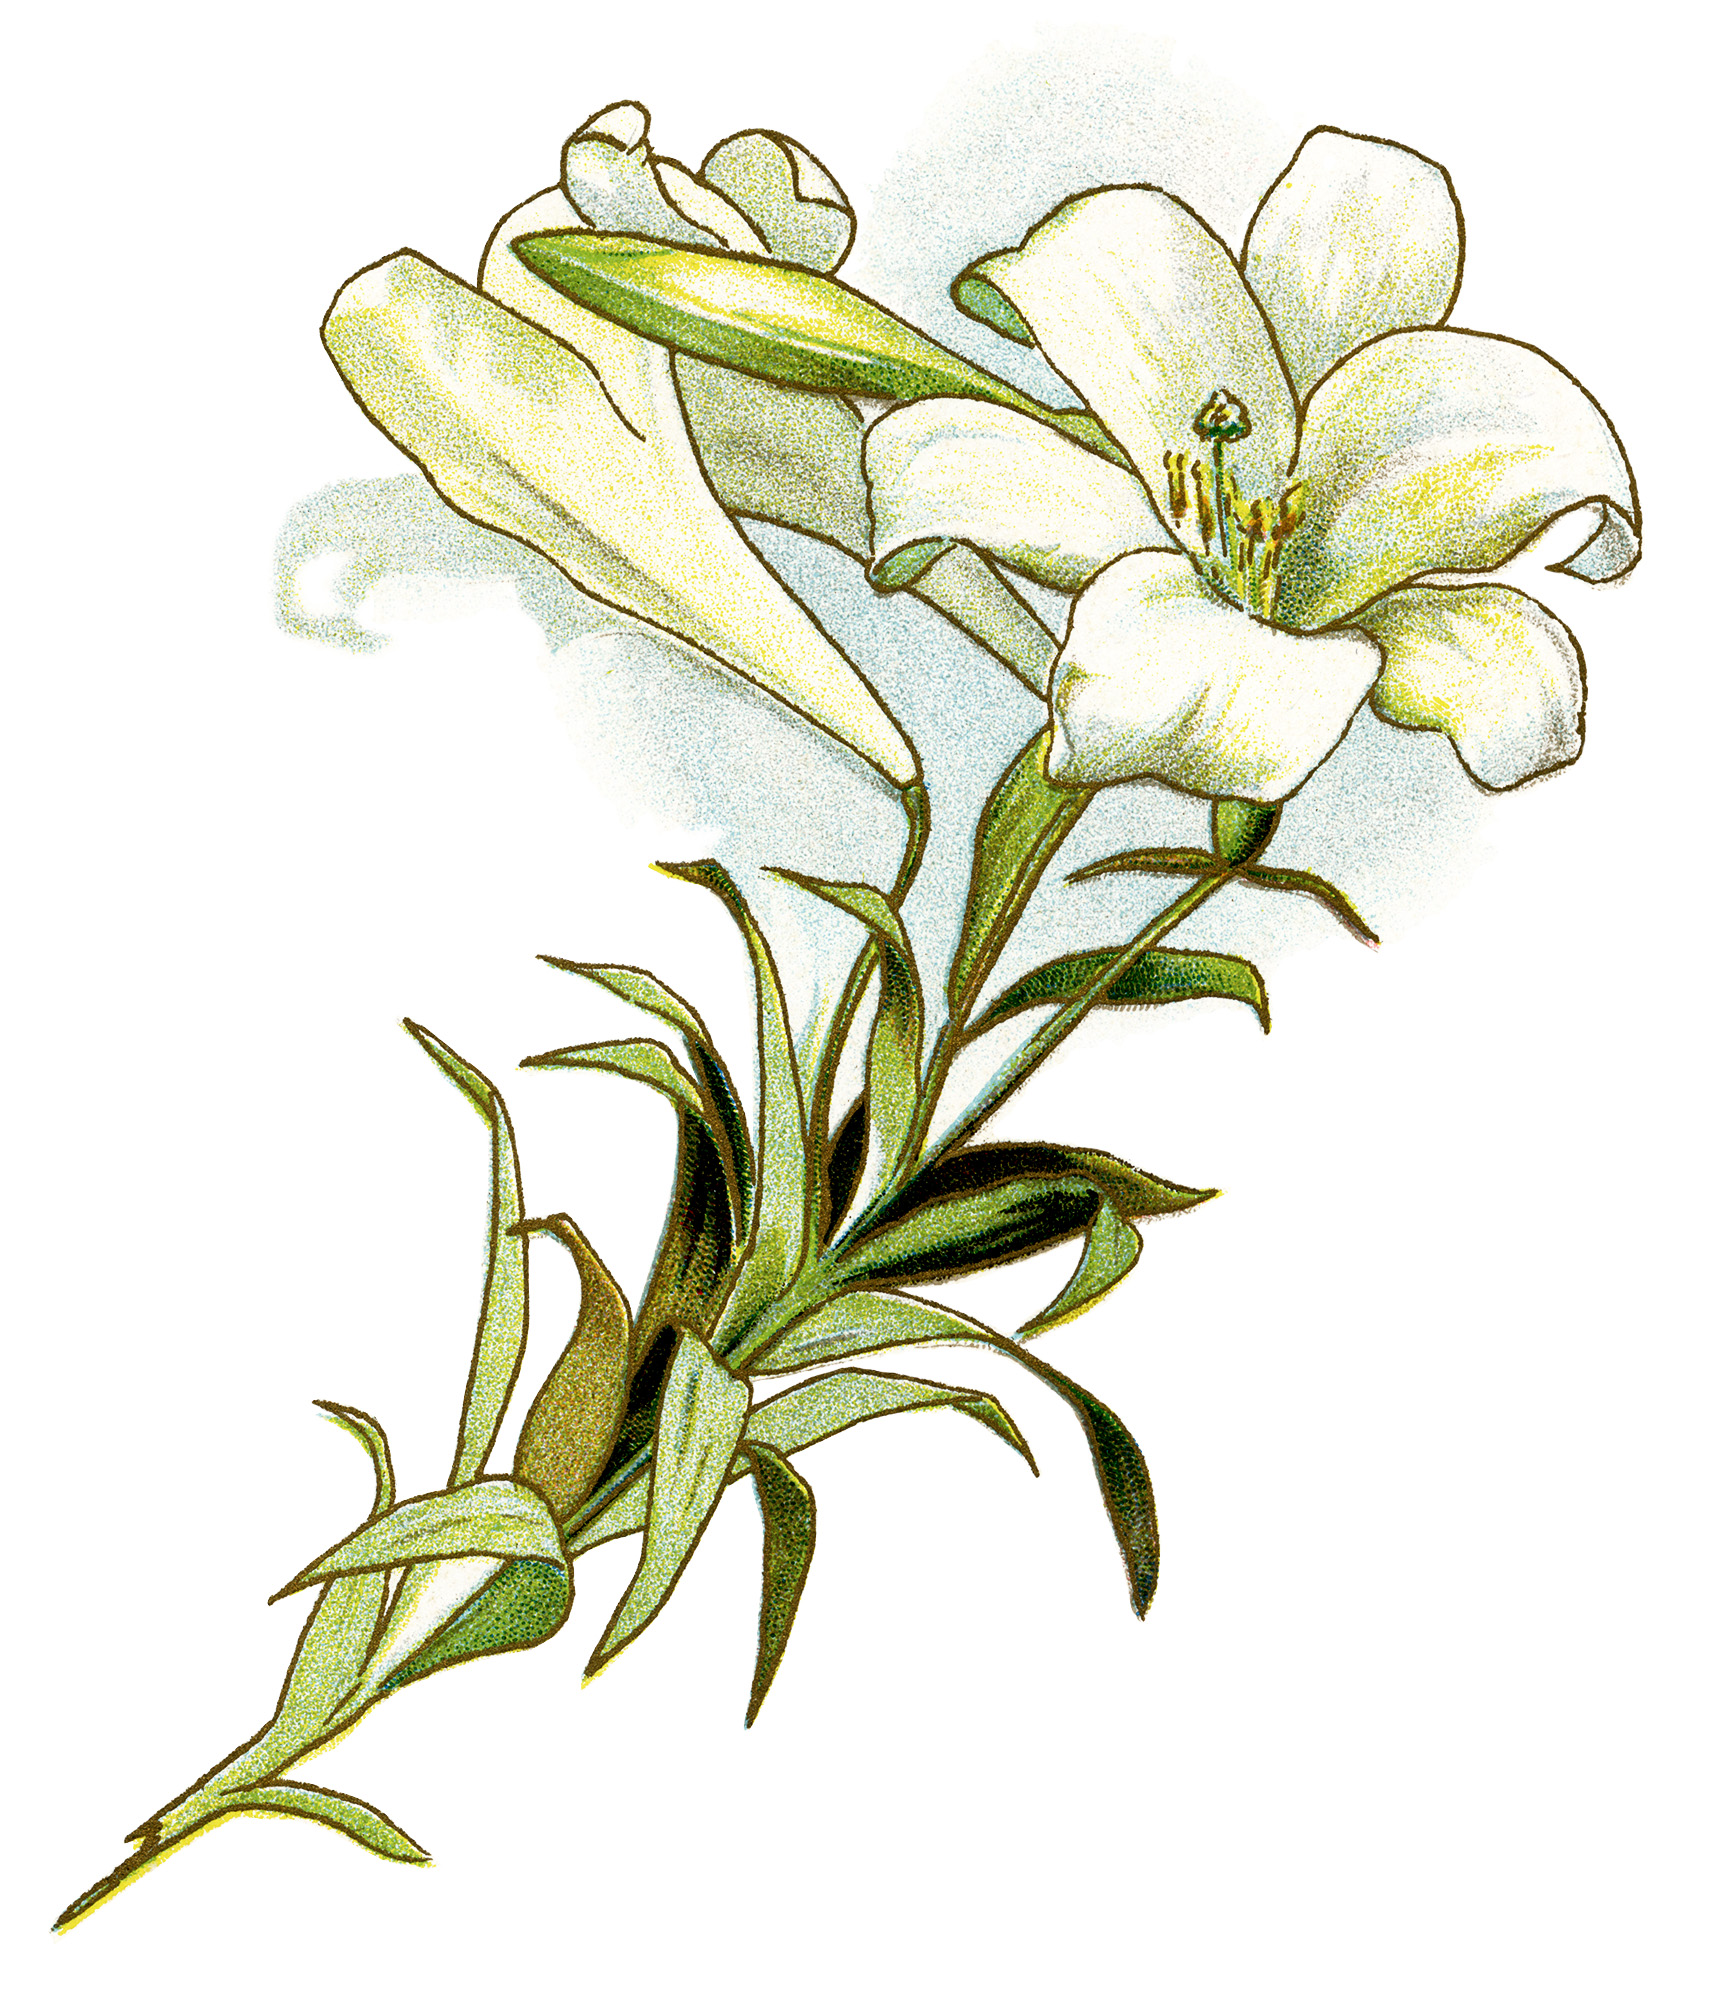 This Beautiful Vintage Image Of A White Lily Is From A Book Of Poetry